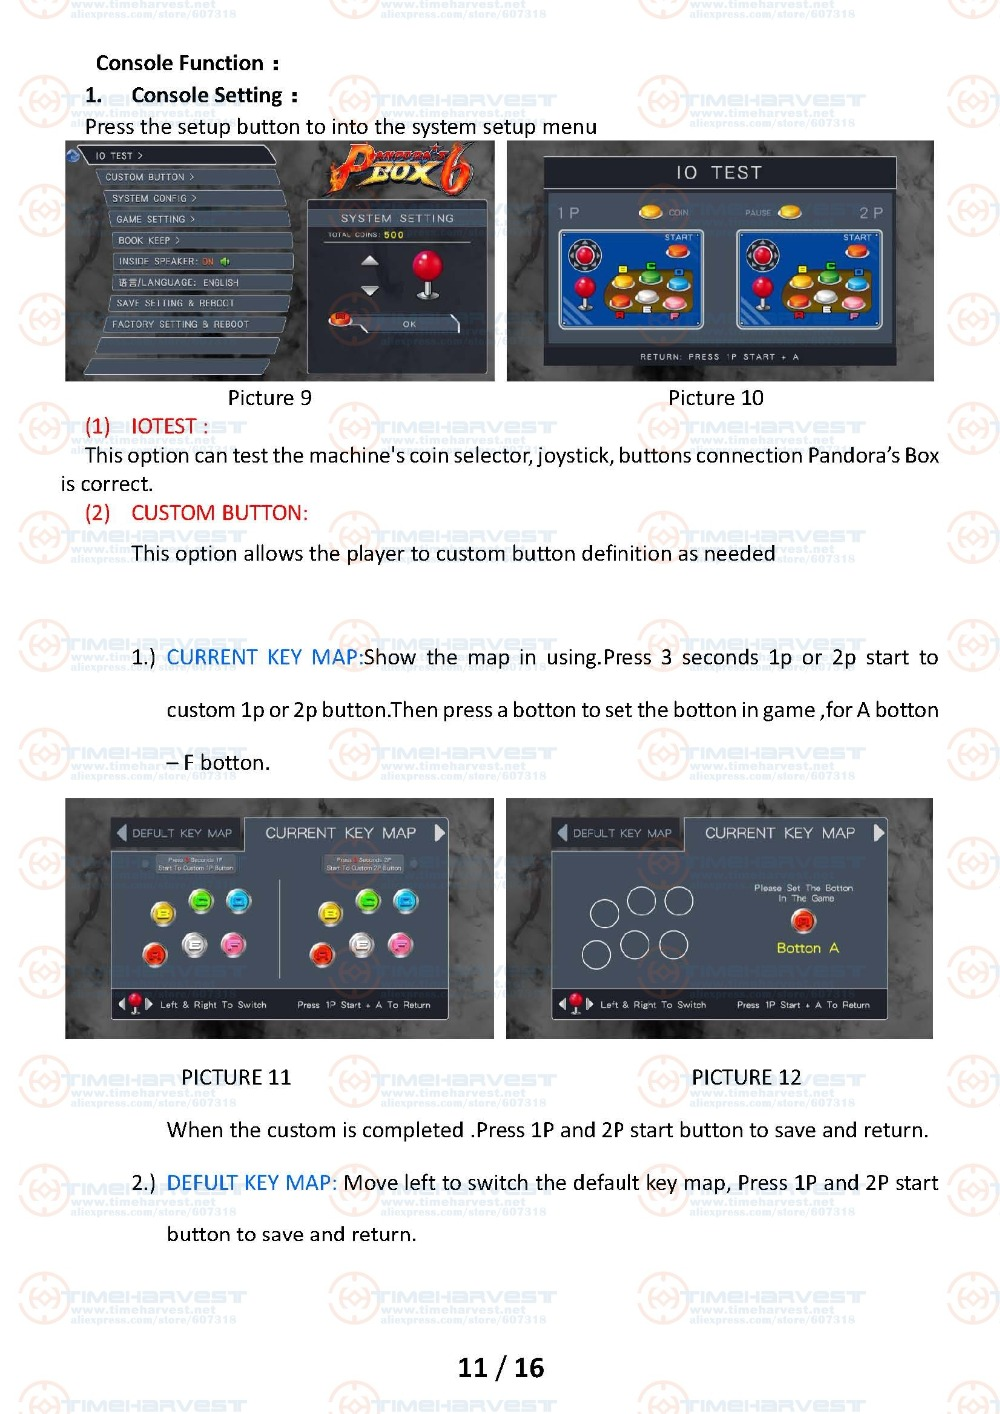 pandora's box6 arcade version user manual__11